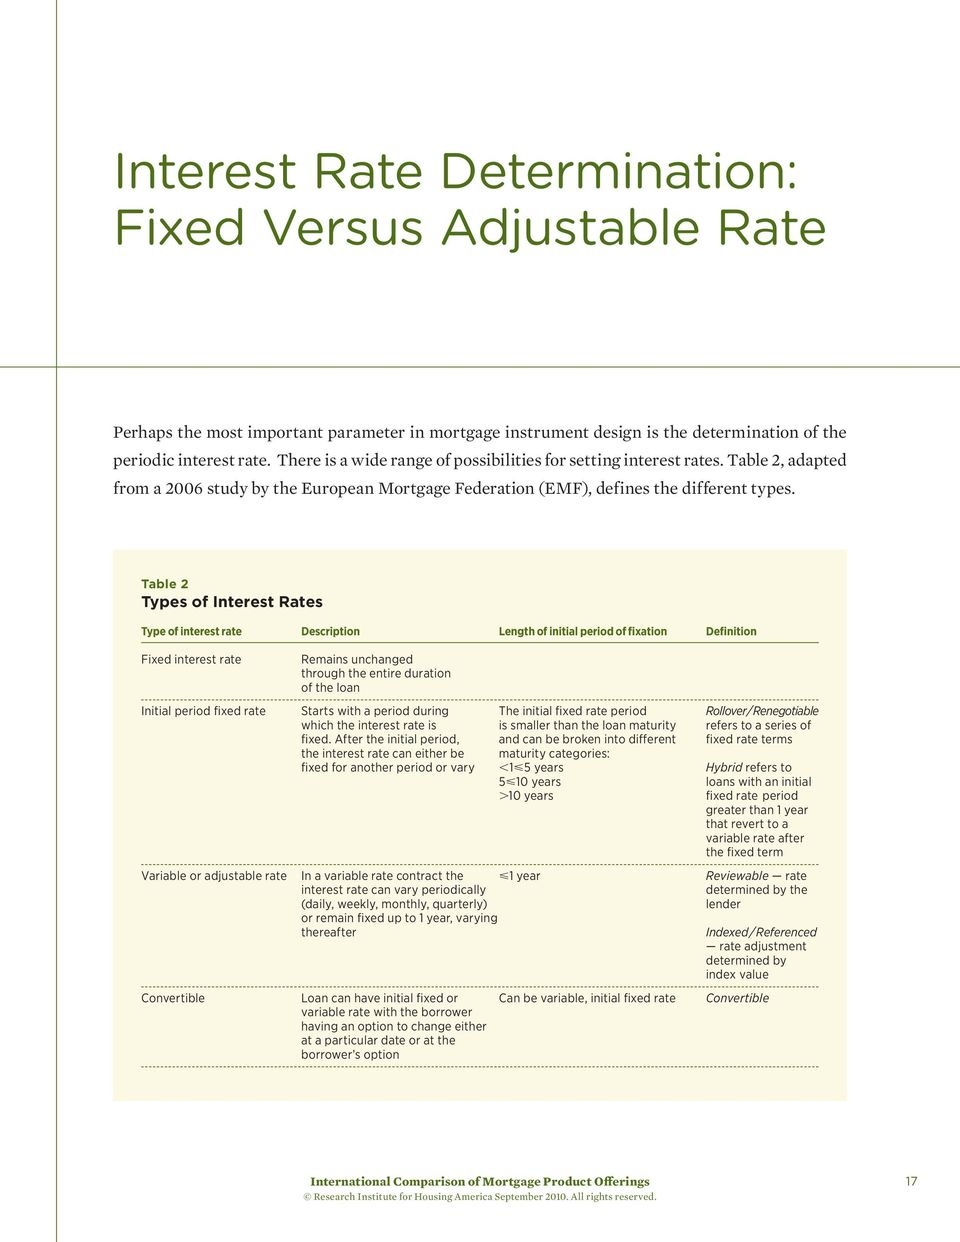 Table 2 Types of Interest Rates Type of interest rate Description Length of initial period of fixation Definition Fixed interest rate Remains unchanged through the entire duration of the loan Initial